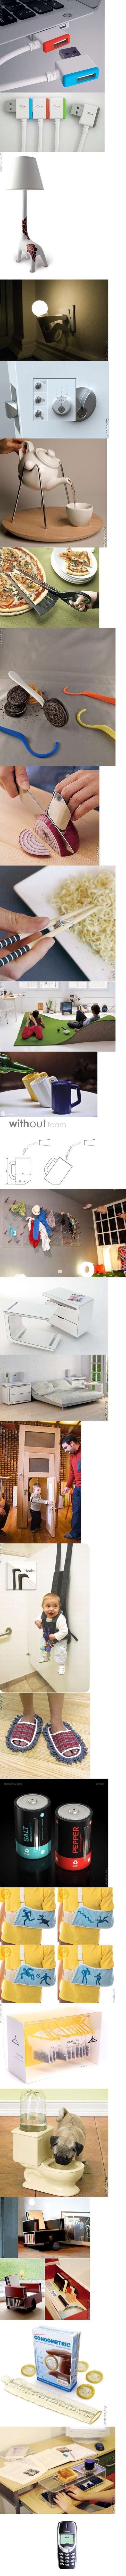 awesome-inventions